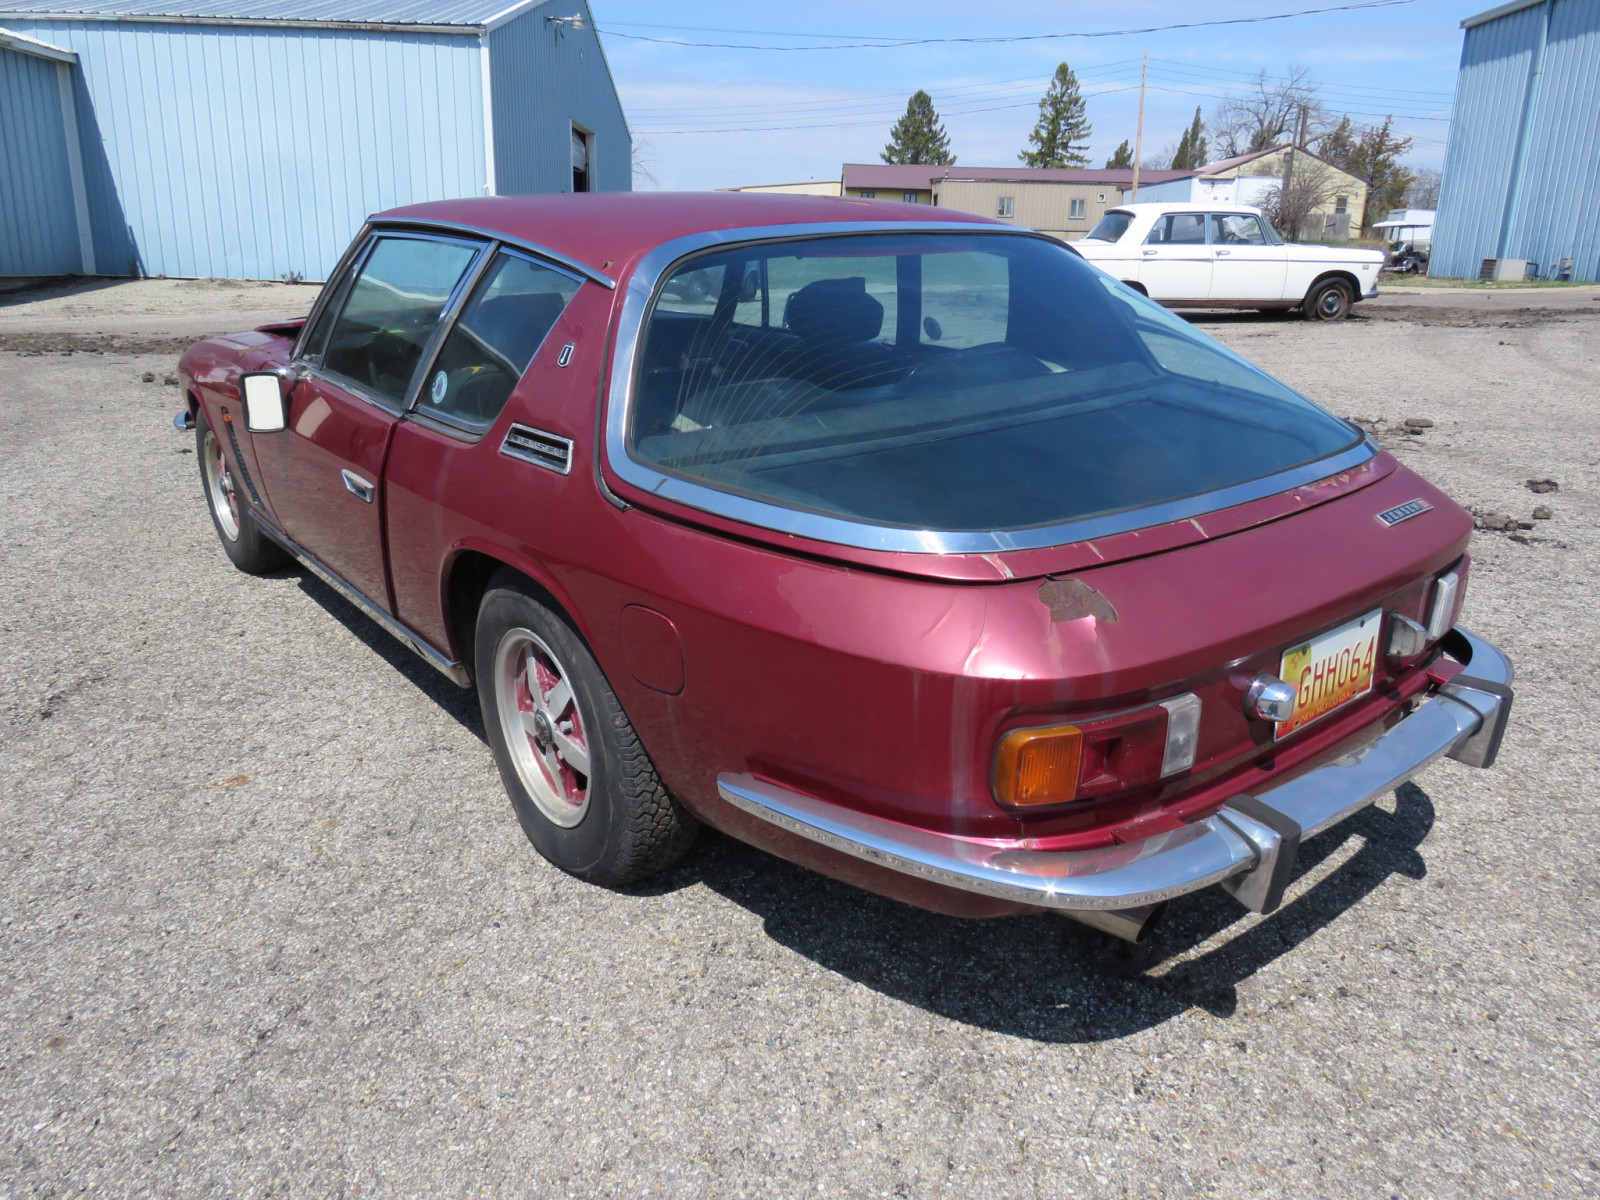 1974 Jensen Interceptor II 2dr Sedan - Image 9